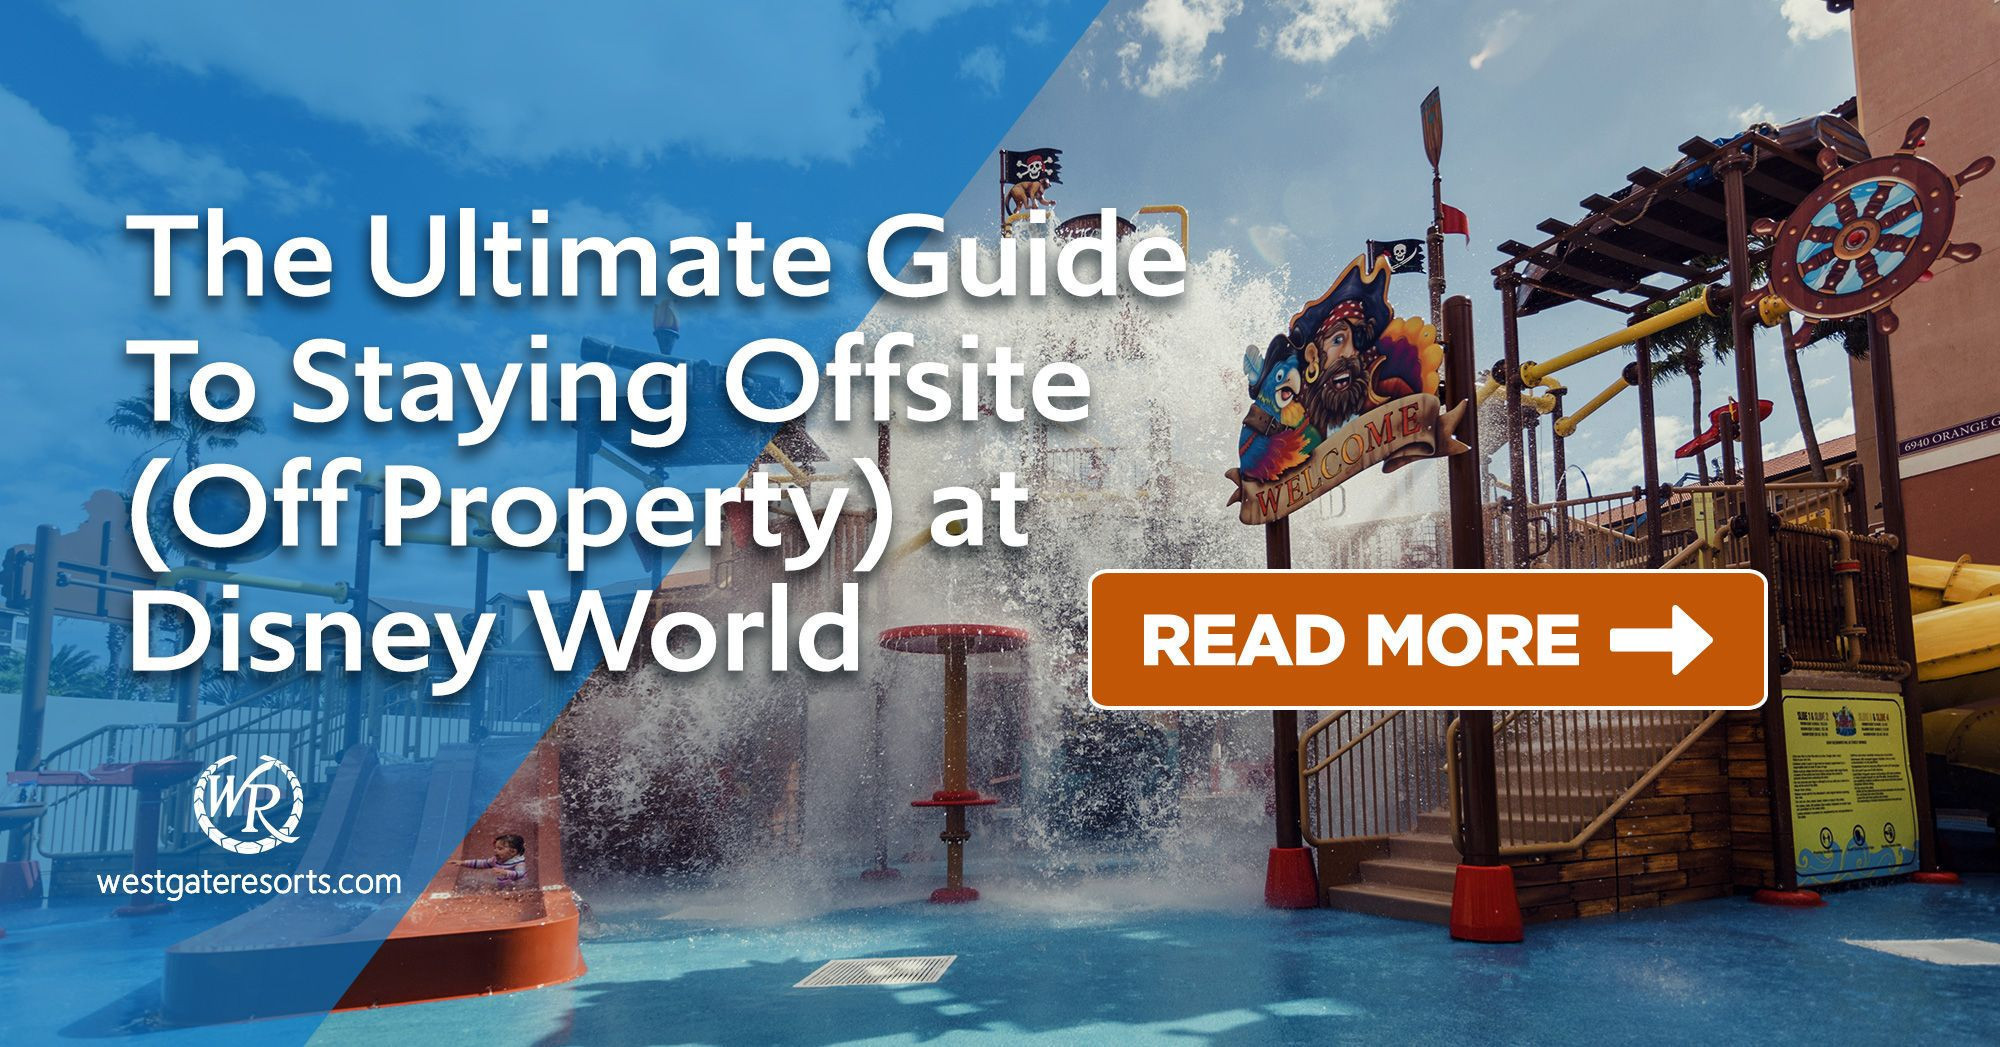 The Ultimate Guide To Staying Offsite (Off Property) Disney World